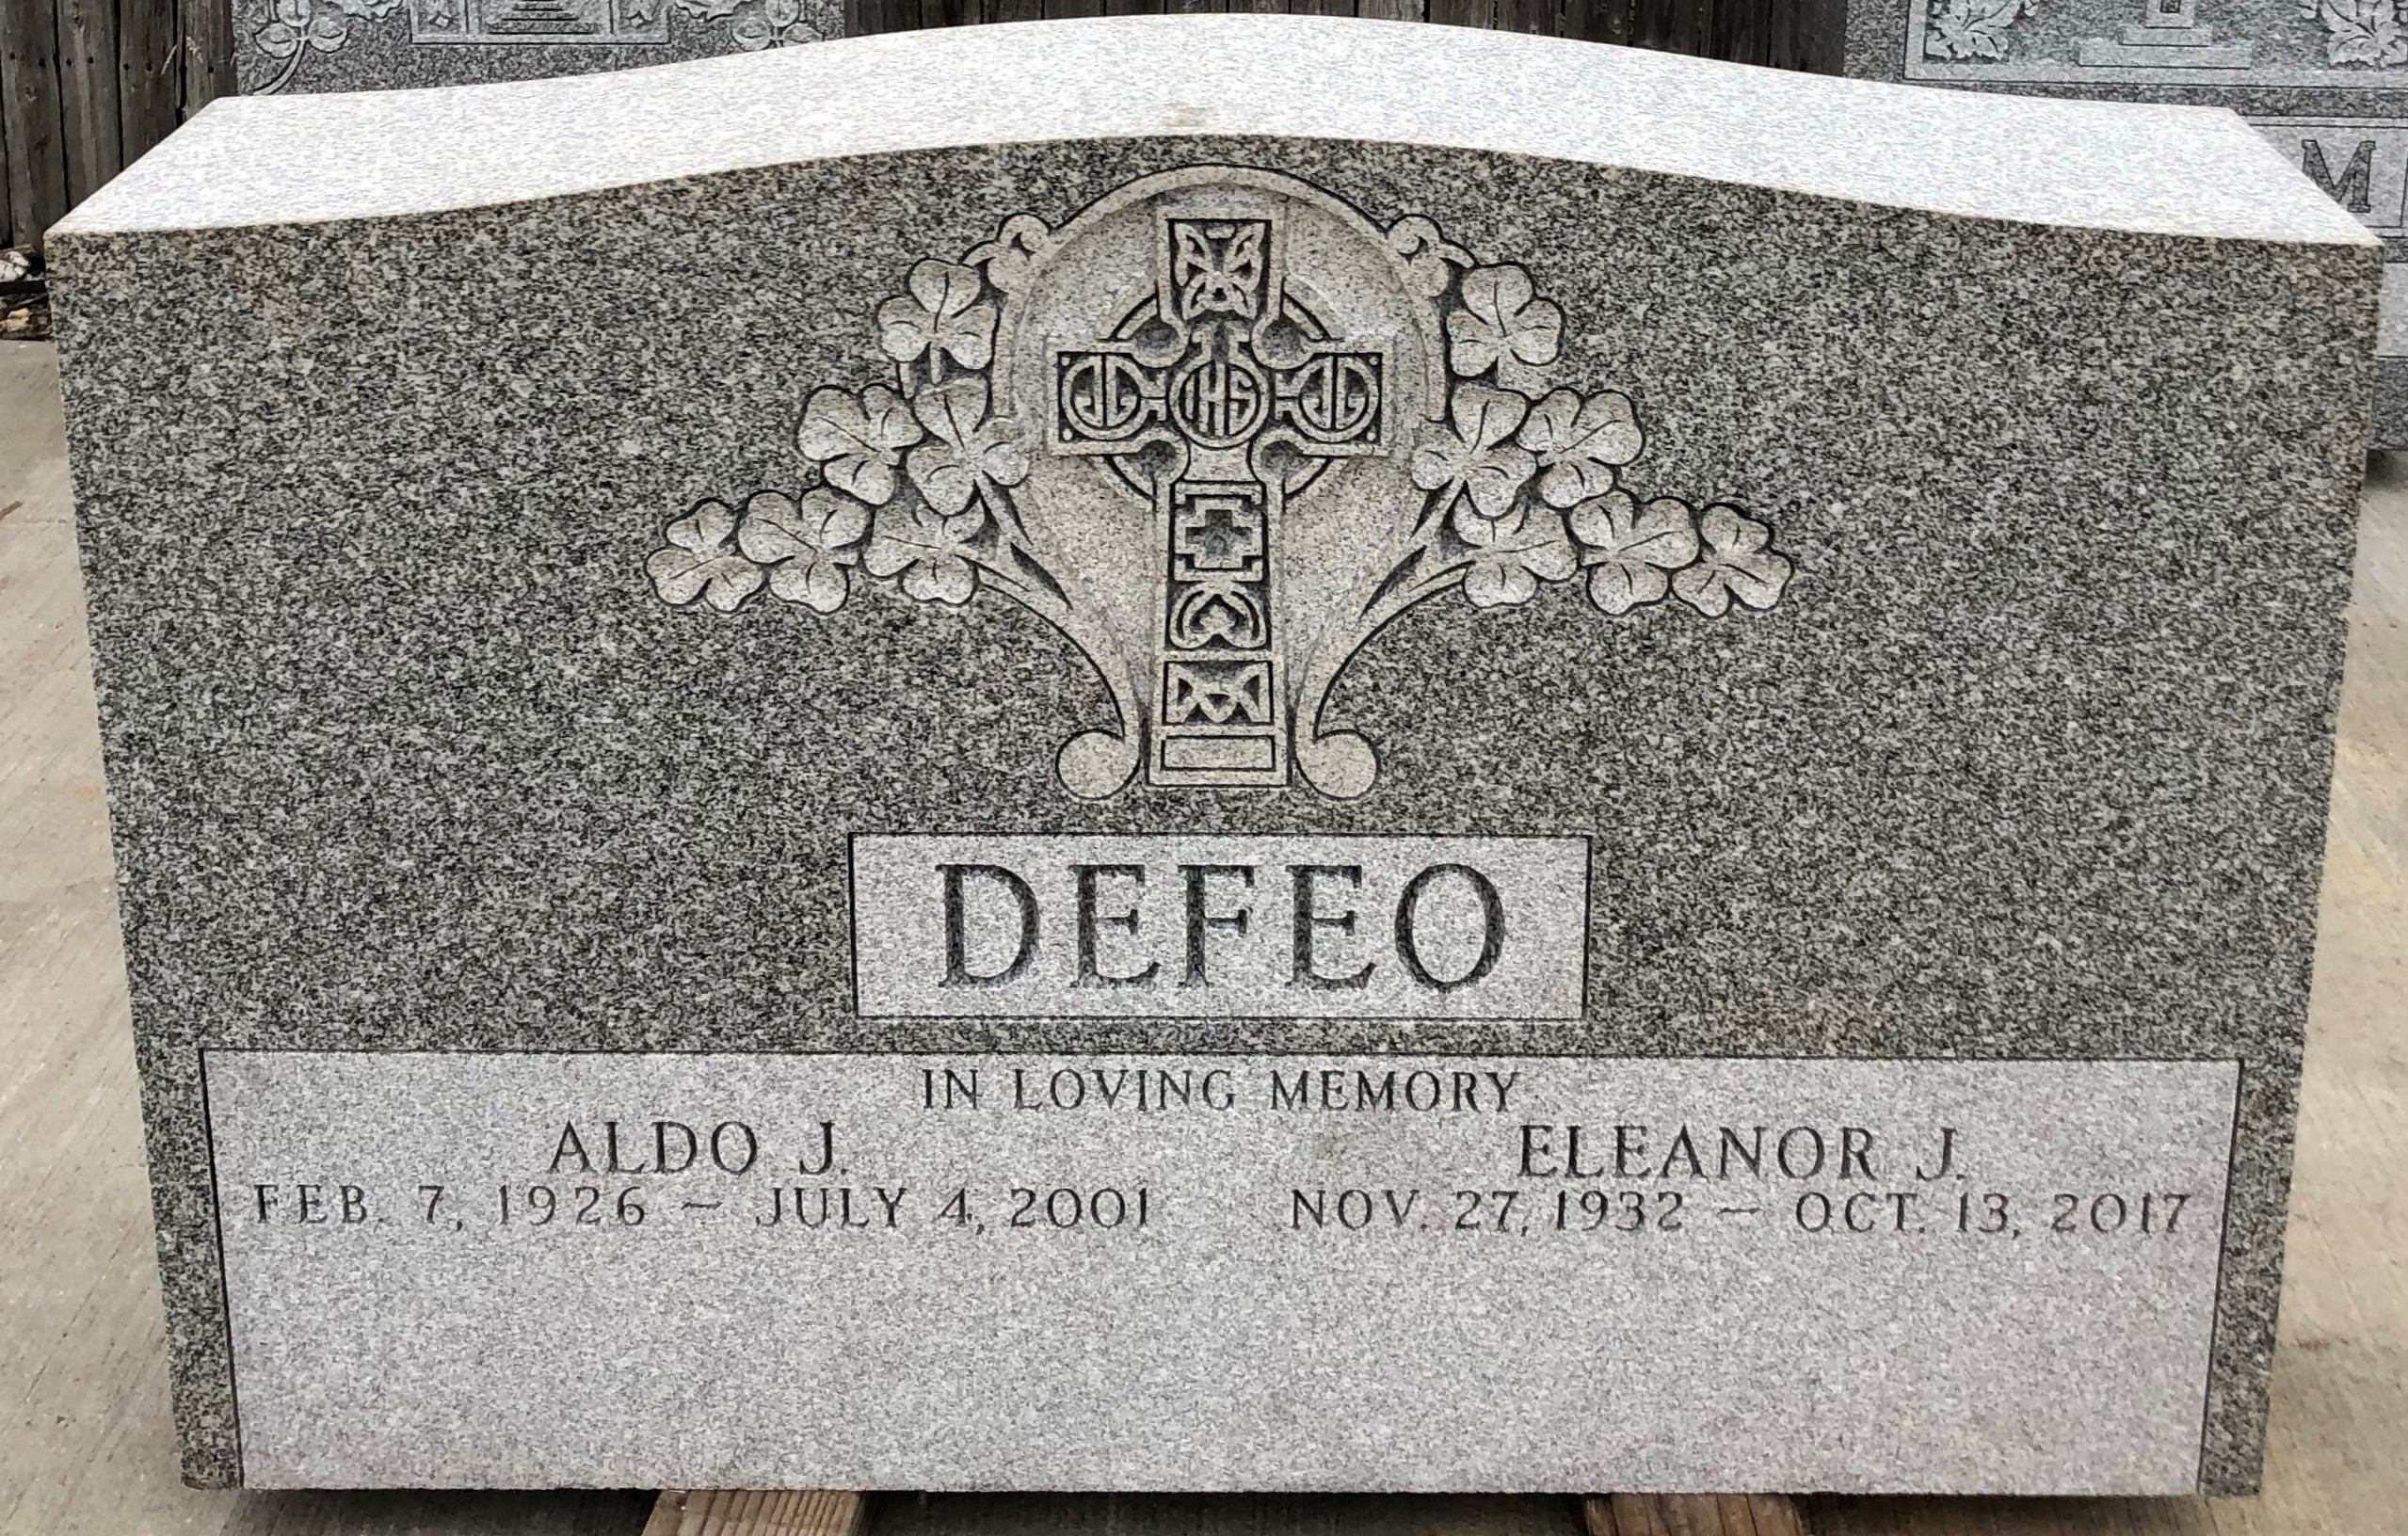 New Christian upright headstones and monuments